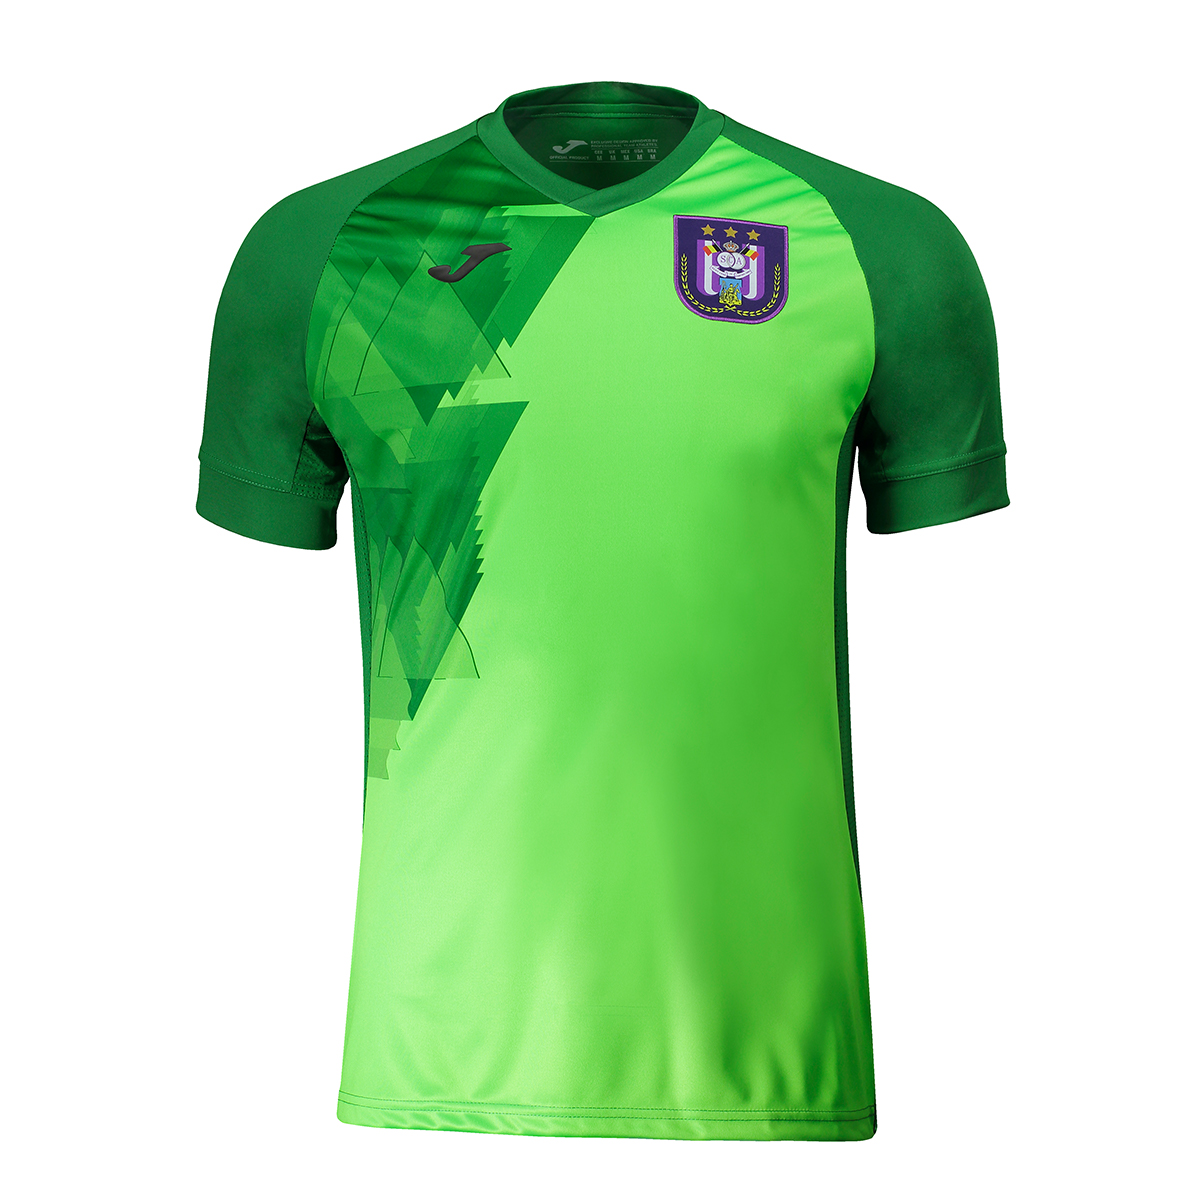 RSCA Training Jersey 2020/2021 - Green